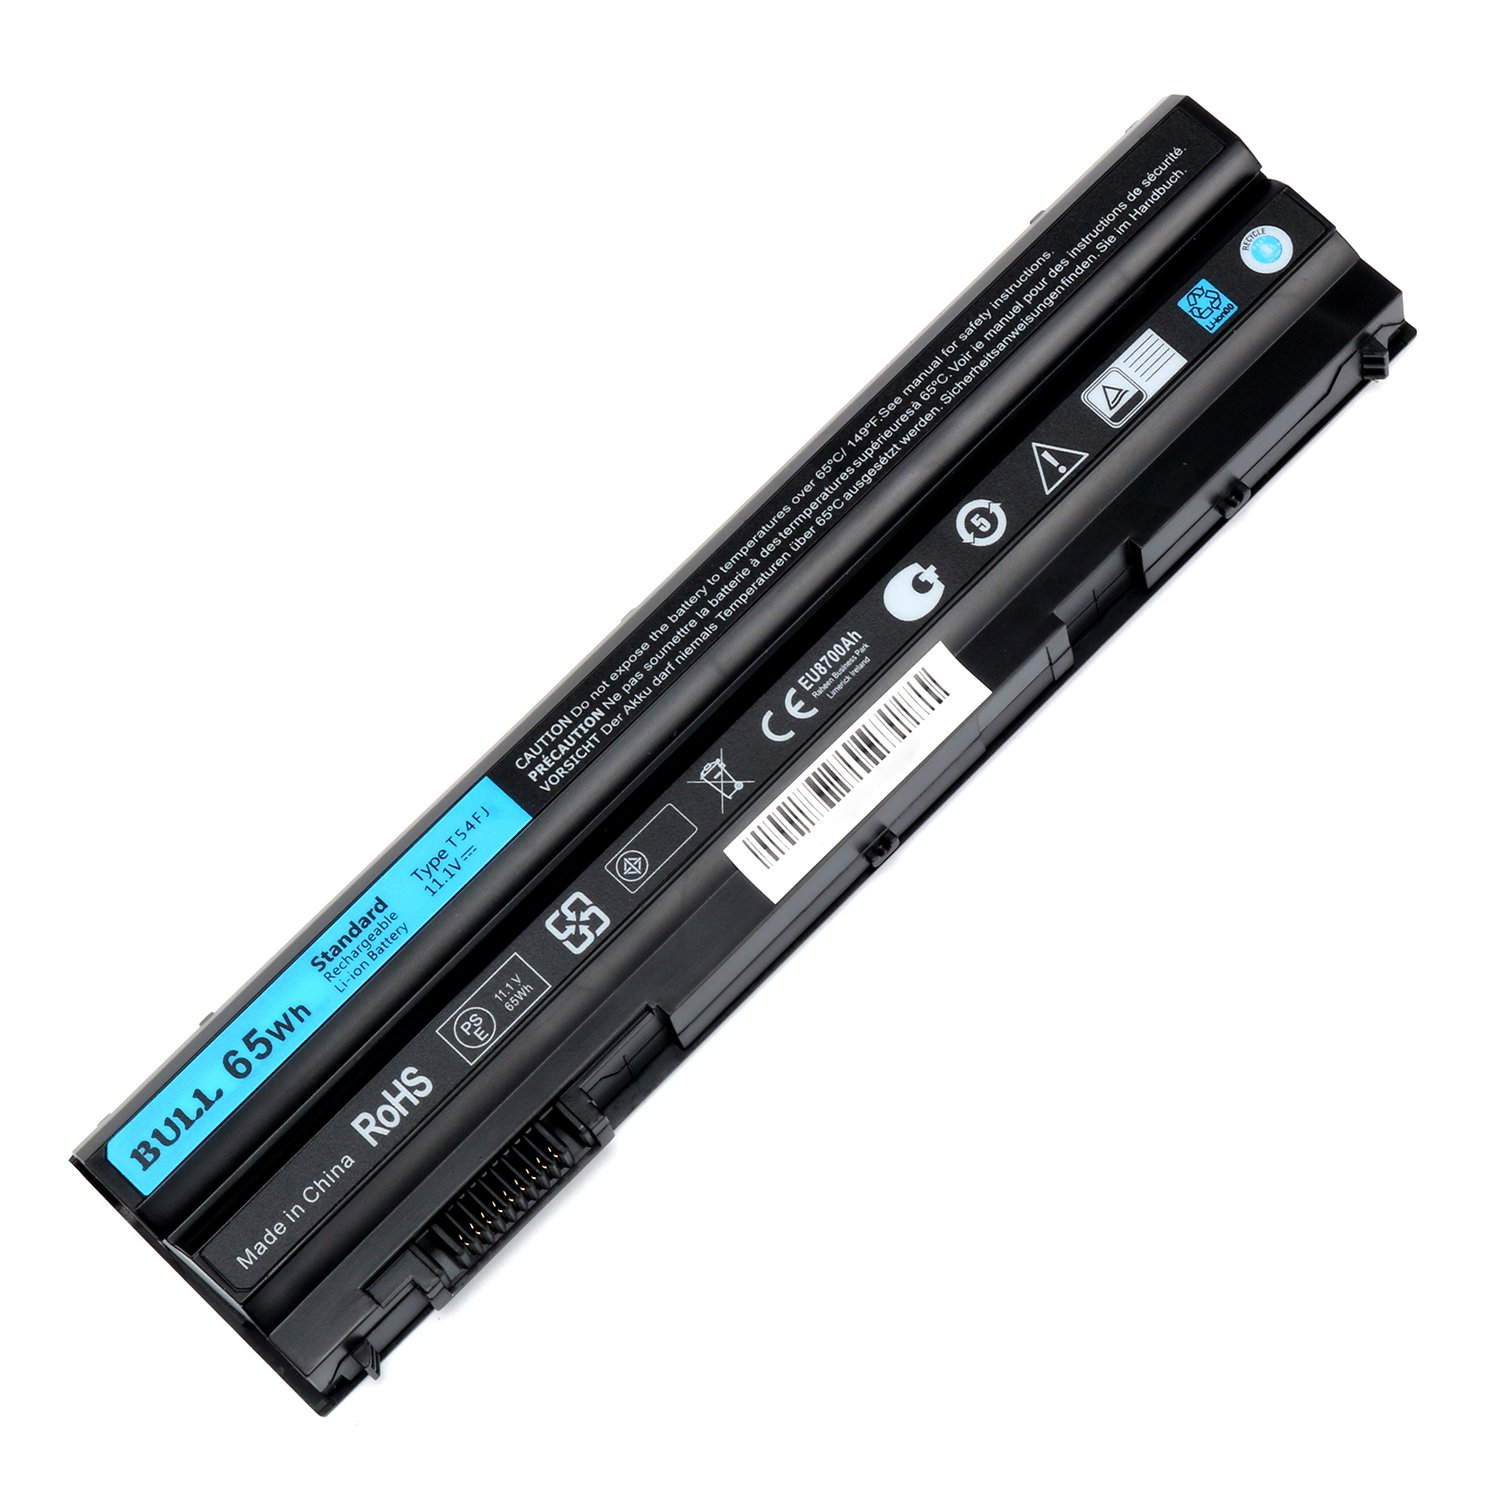 BULL-TECH 11.1V T54FJ New Laptop Battery for Dell Latitude E5420 E5520 E6420 E6520 Compatible P/N: M5Y0X 312-1163 HCJWT 7FJ92 by BULL-TECH (Image #4)